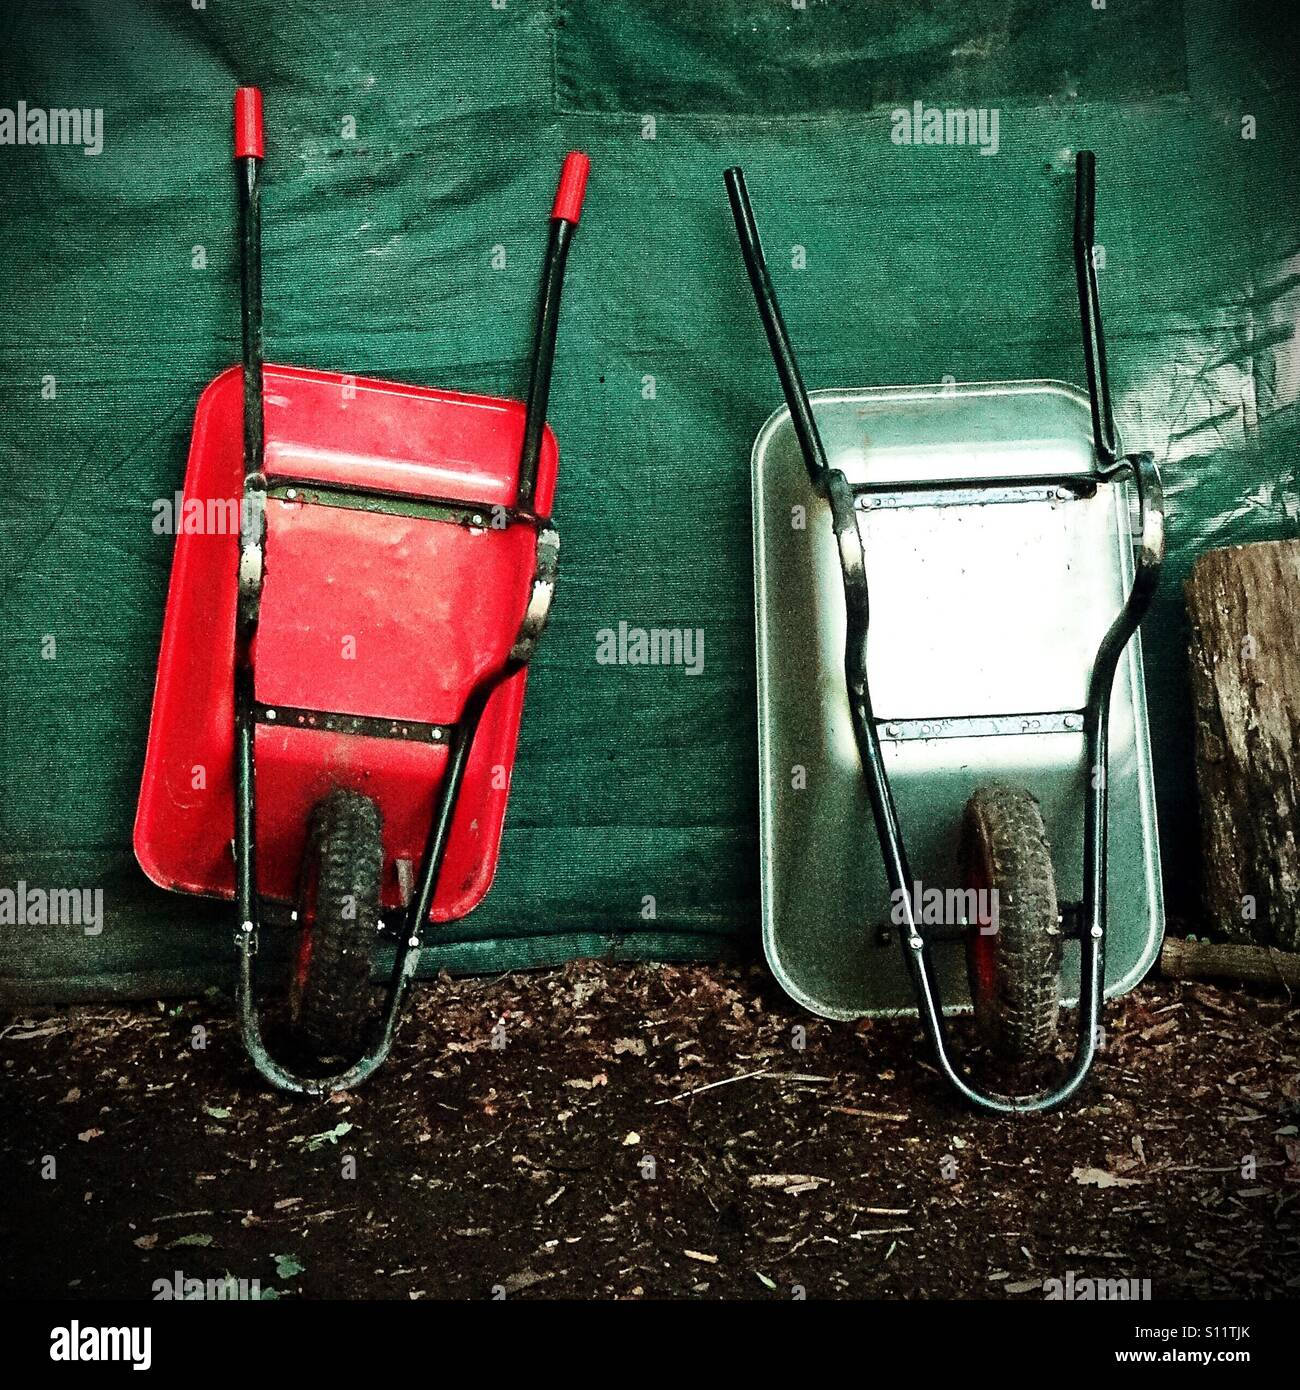 Wheelbarrows in garden - Stock Image